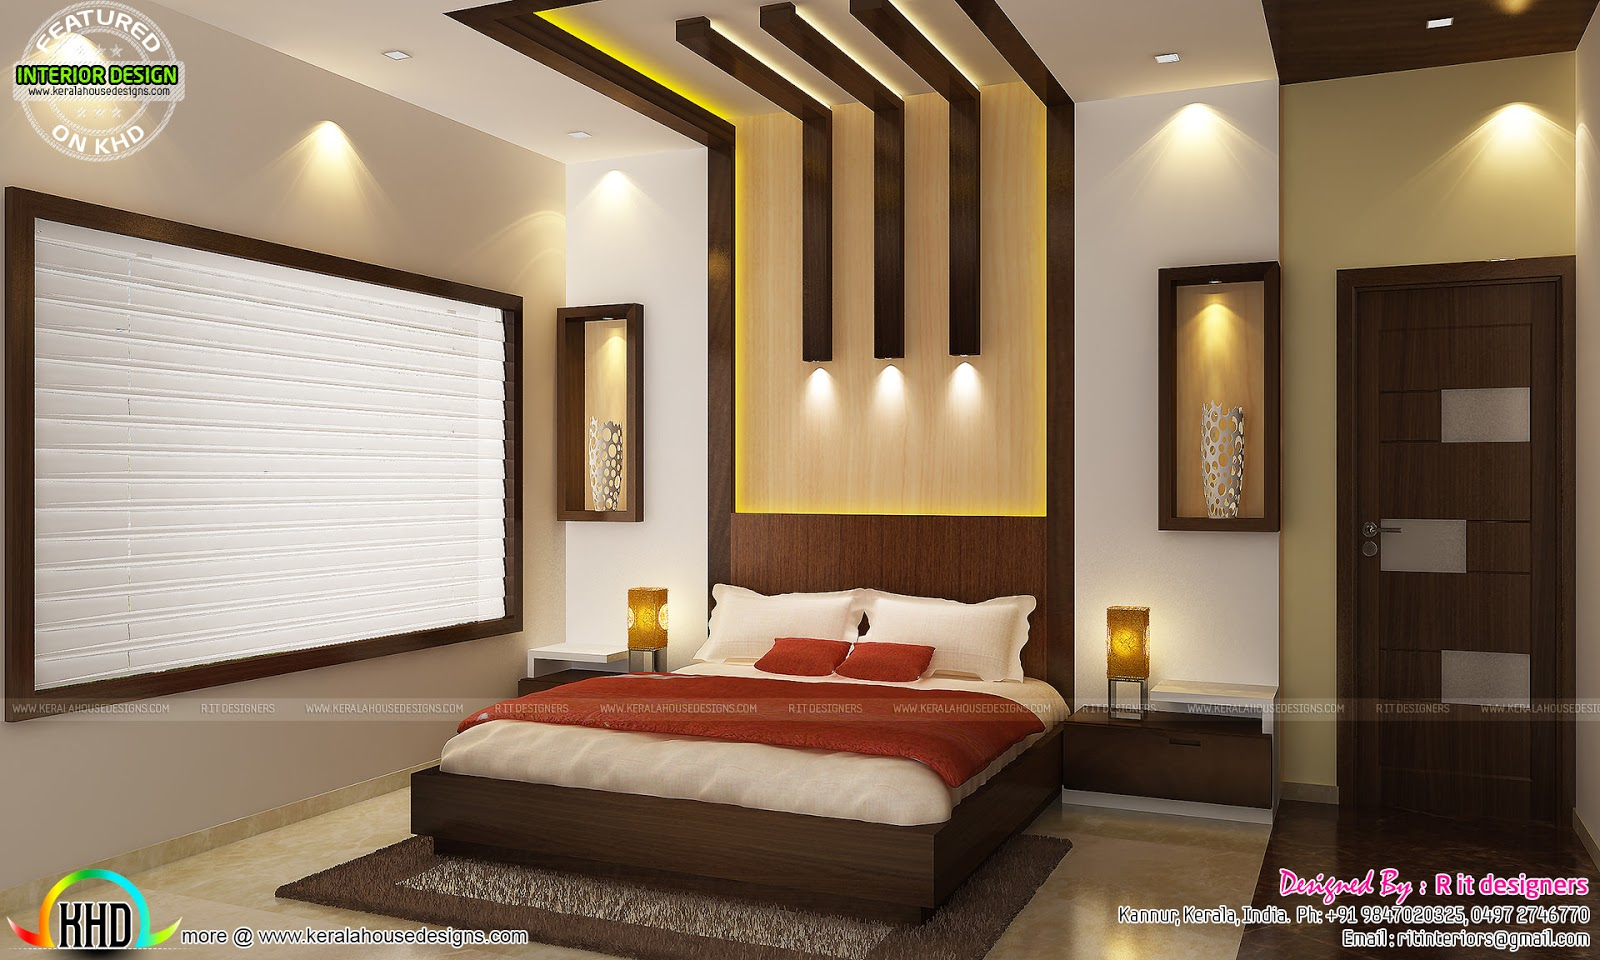 Kitchen living bedroom dining interior decor kerala for Interior design ideas bedroom